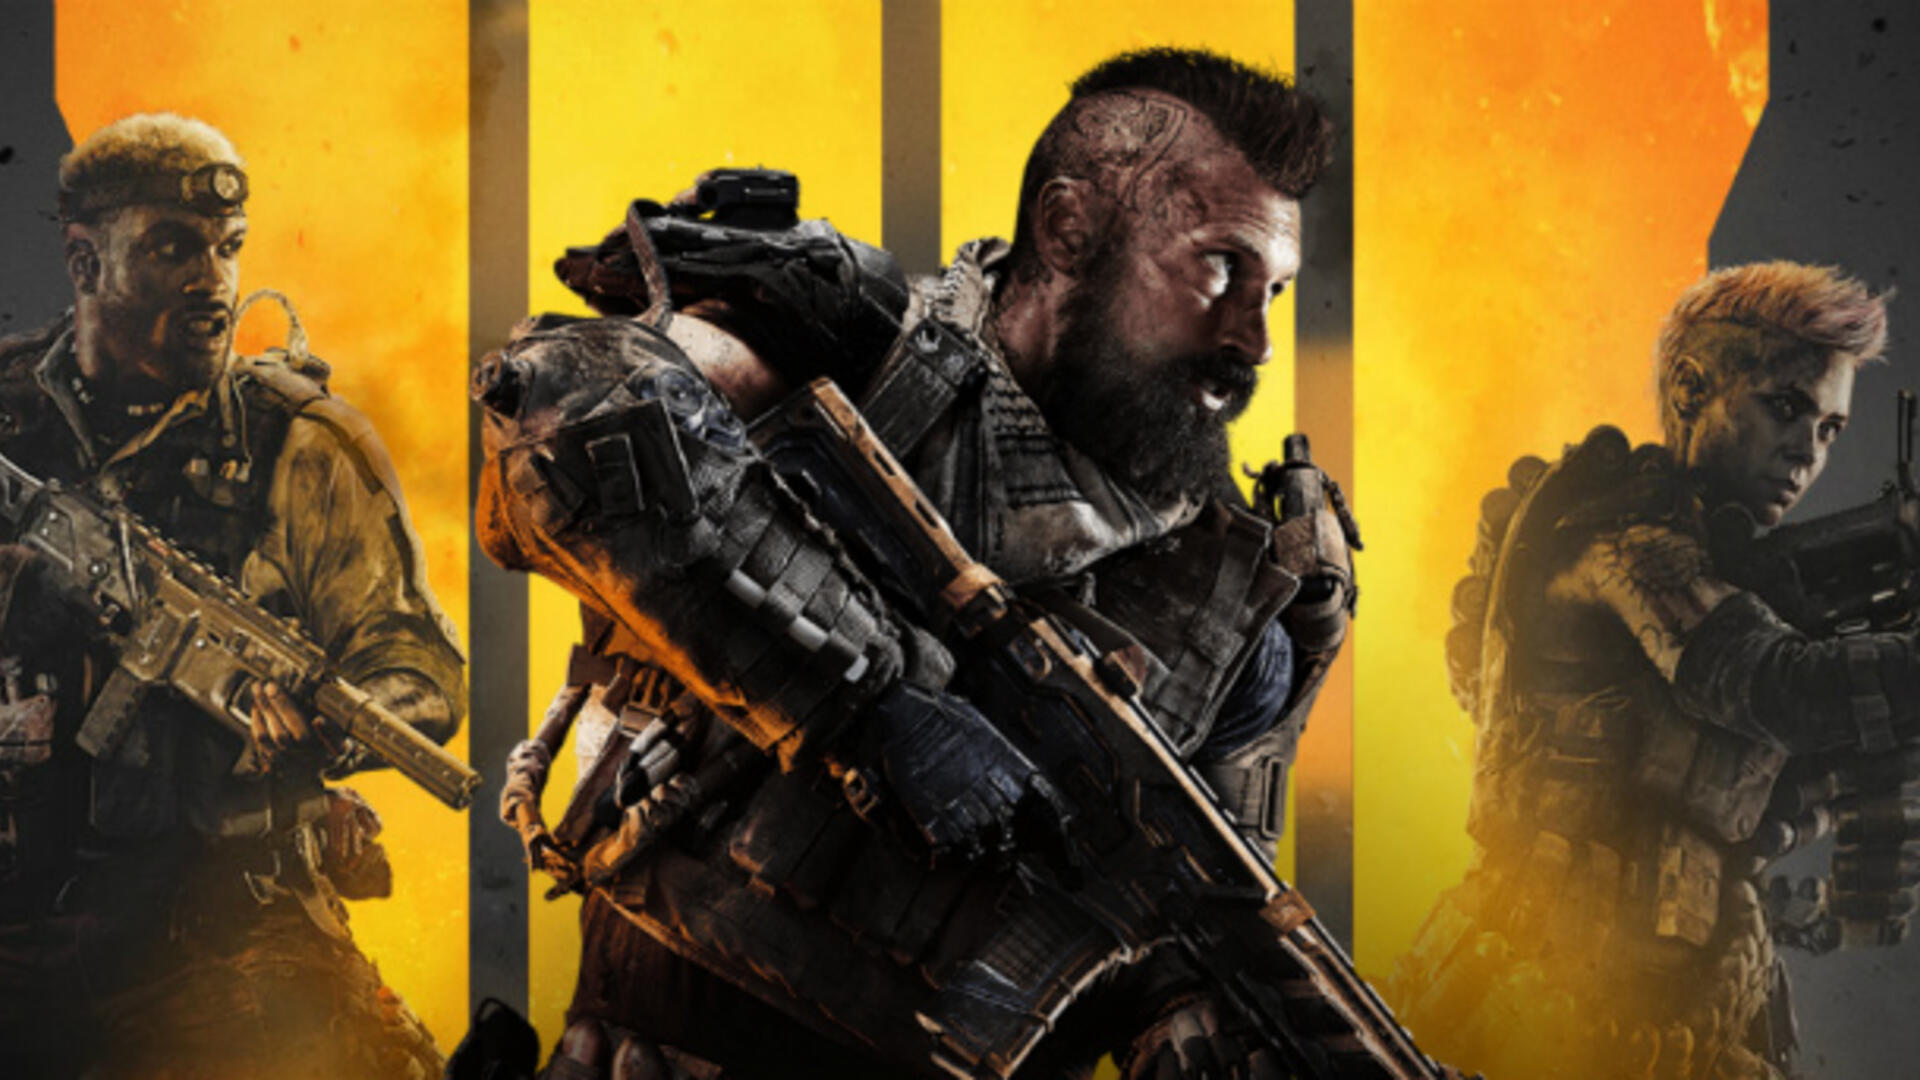 How to Fix Fatal Black Ops 4 PC Error 897625509 That Stops Game From Loading